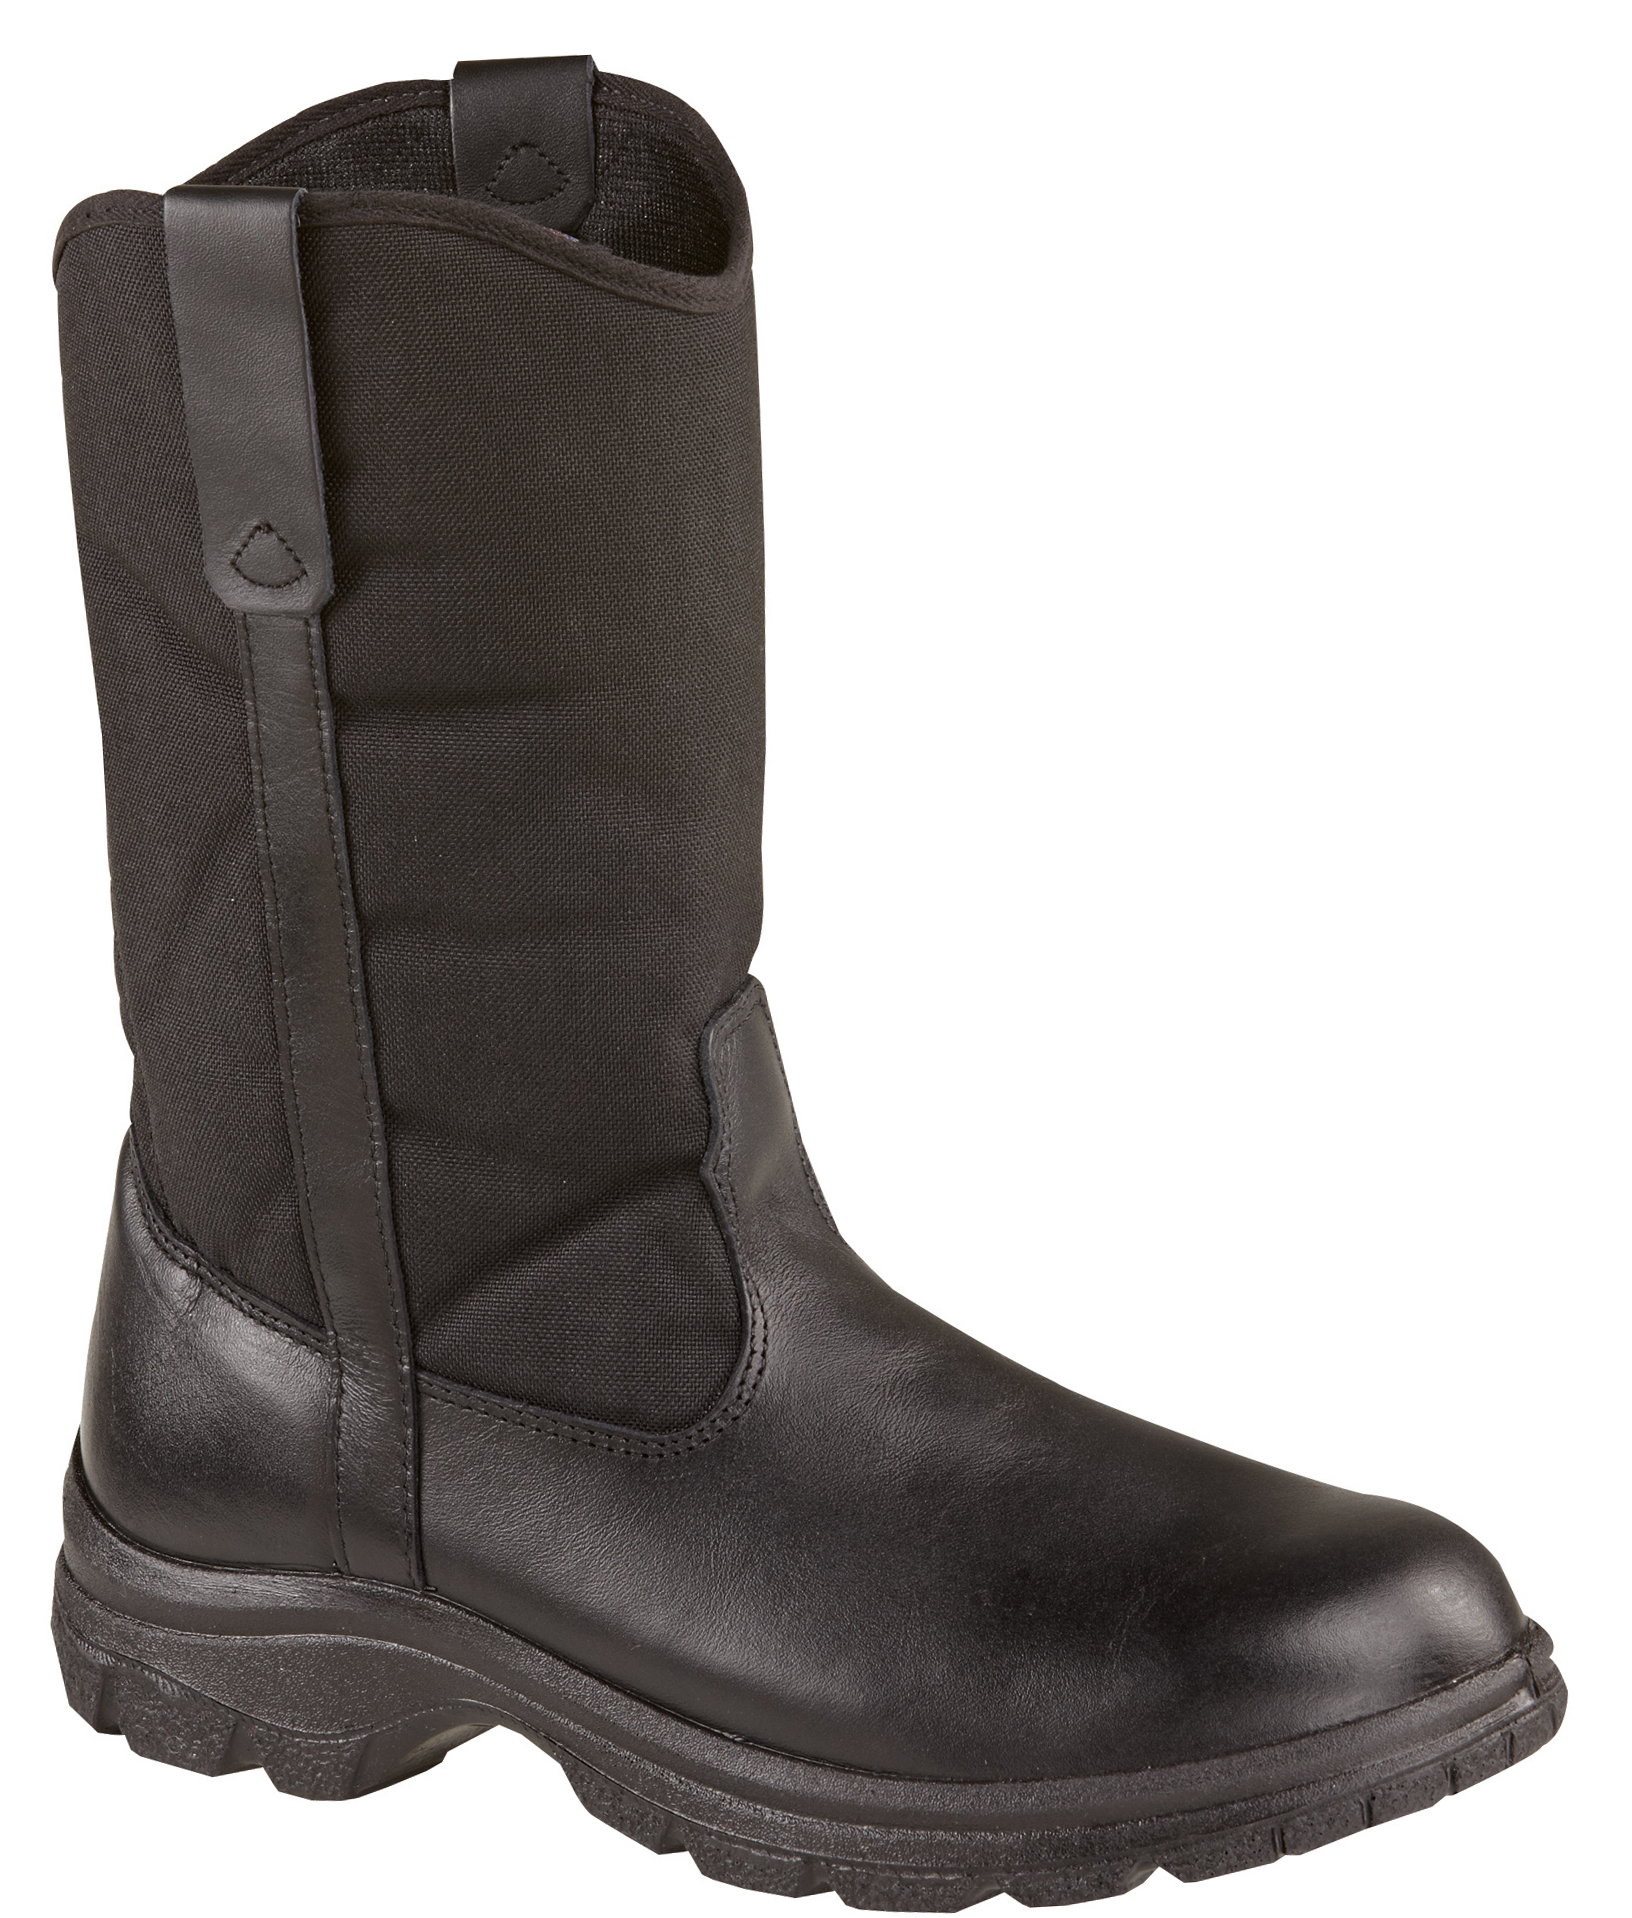 "Thorogood Men's Thorogood Work Station Boots 10"" Wellington Non-Safety Medium (D, M) Black Leather 834-6211 at Sears.com"